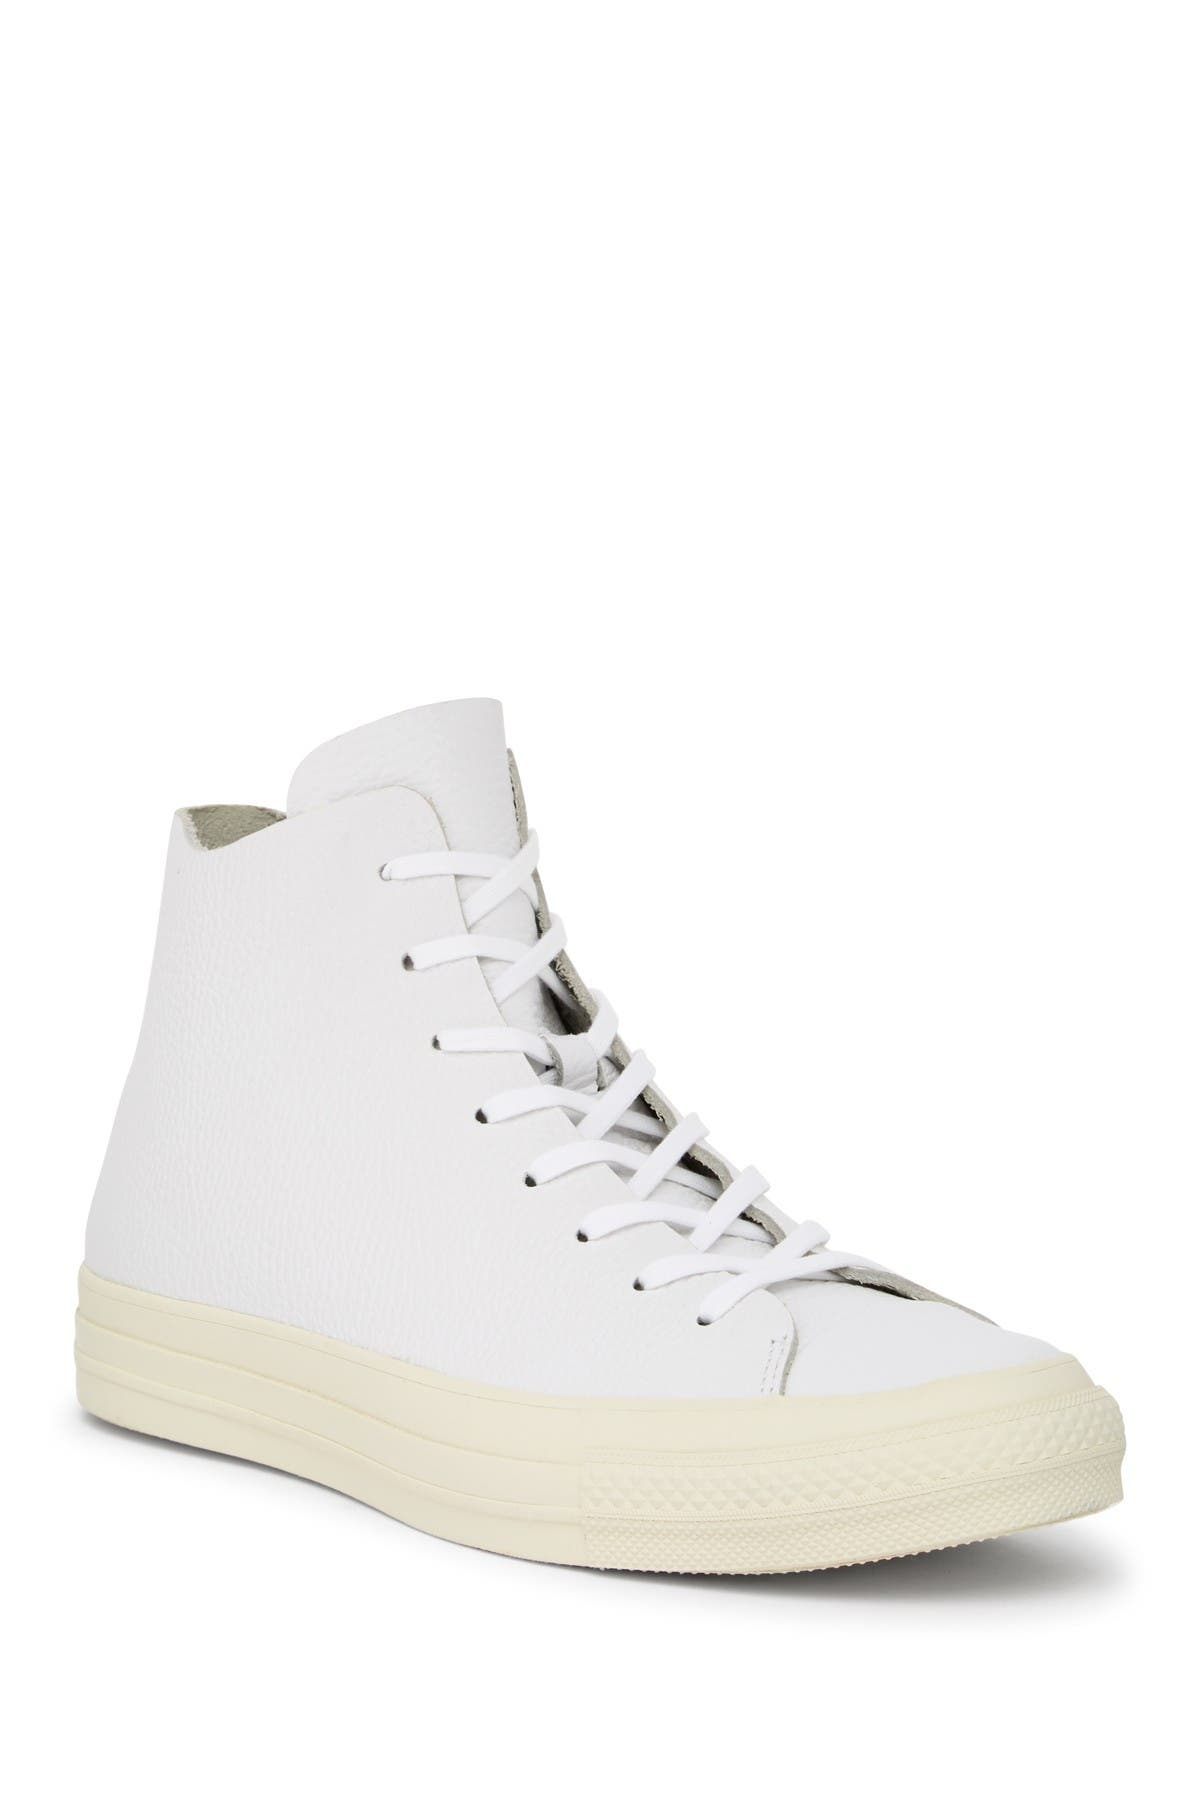 Converse   Prime High Top Leather